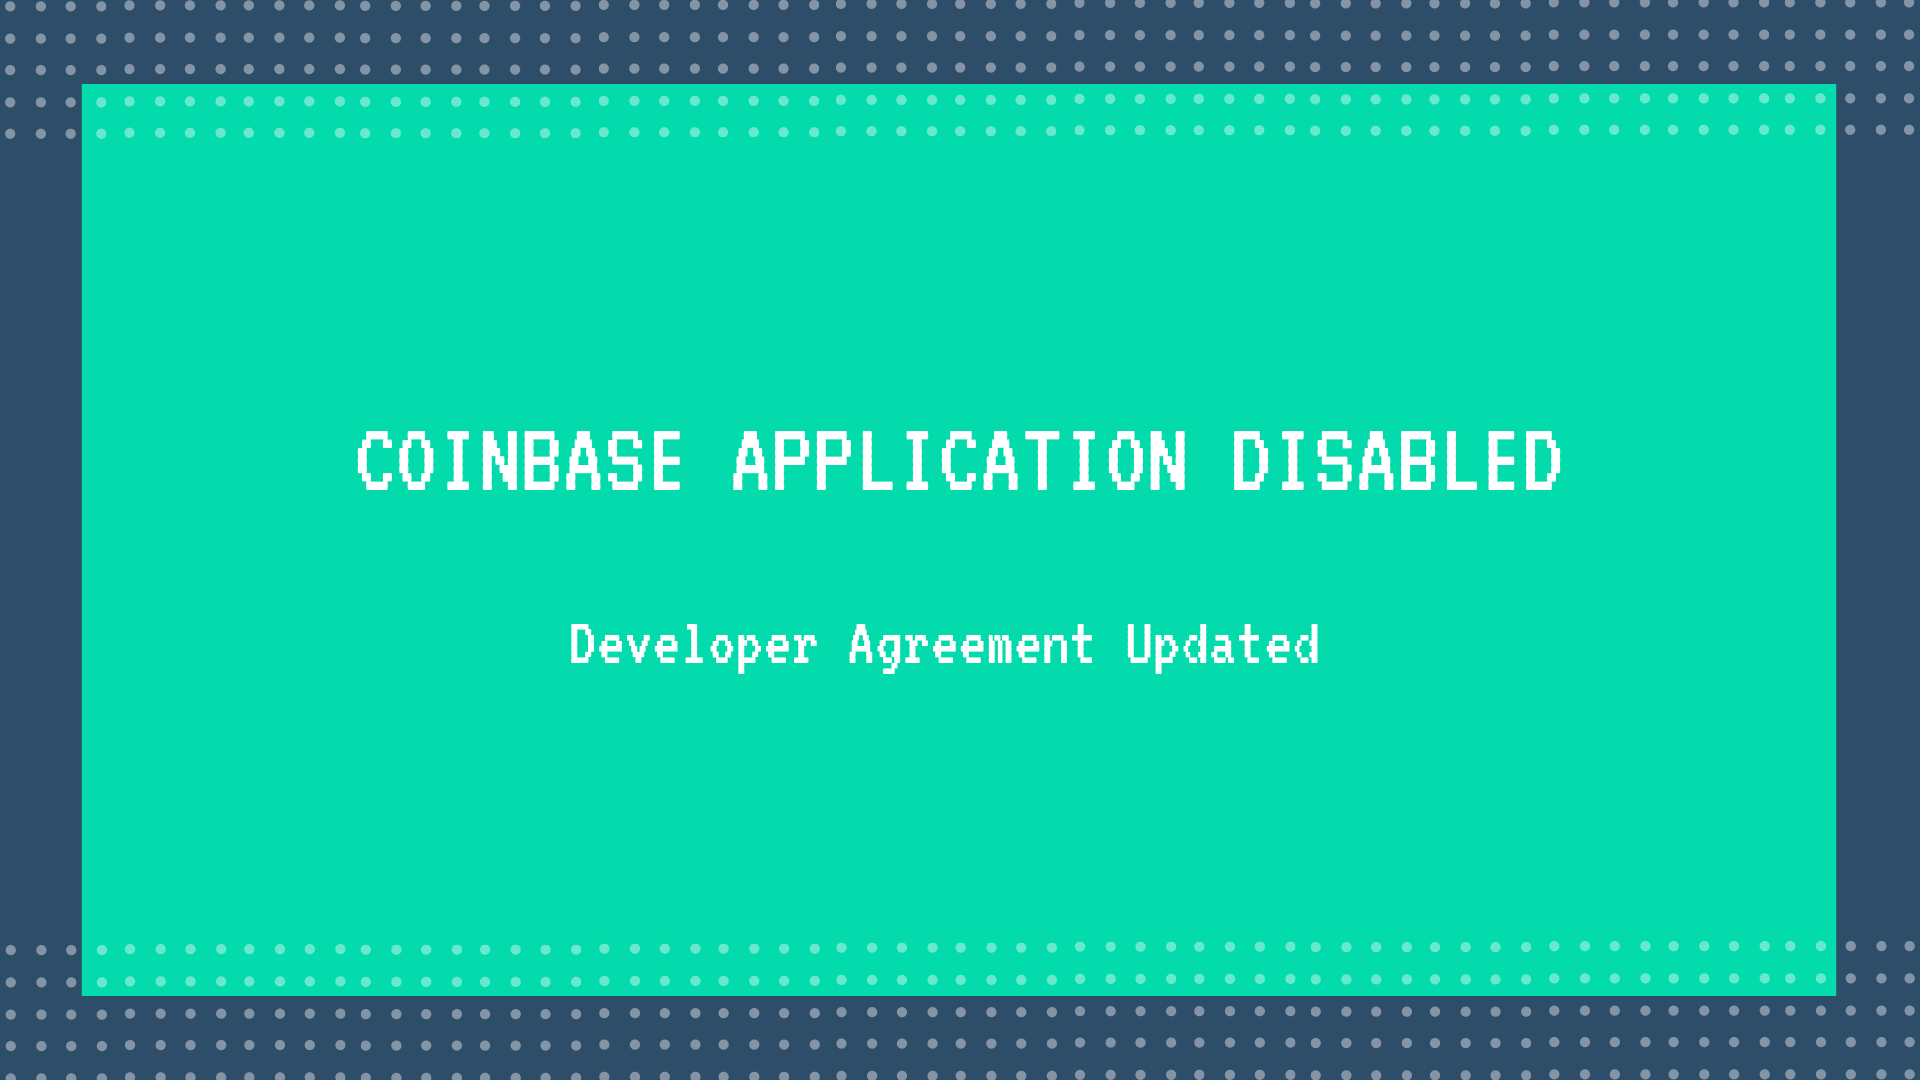 /what-is-coinbases-application-disabled-error-and-how-to-resolve-it-6e9862e8ecb1 feature image